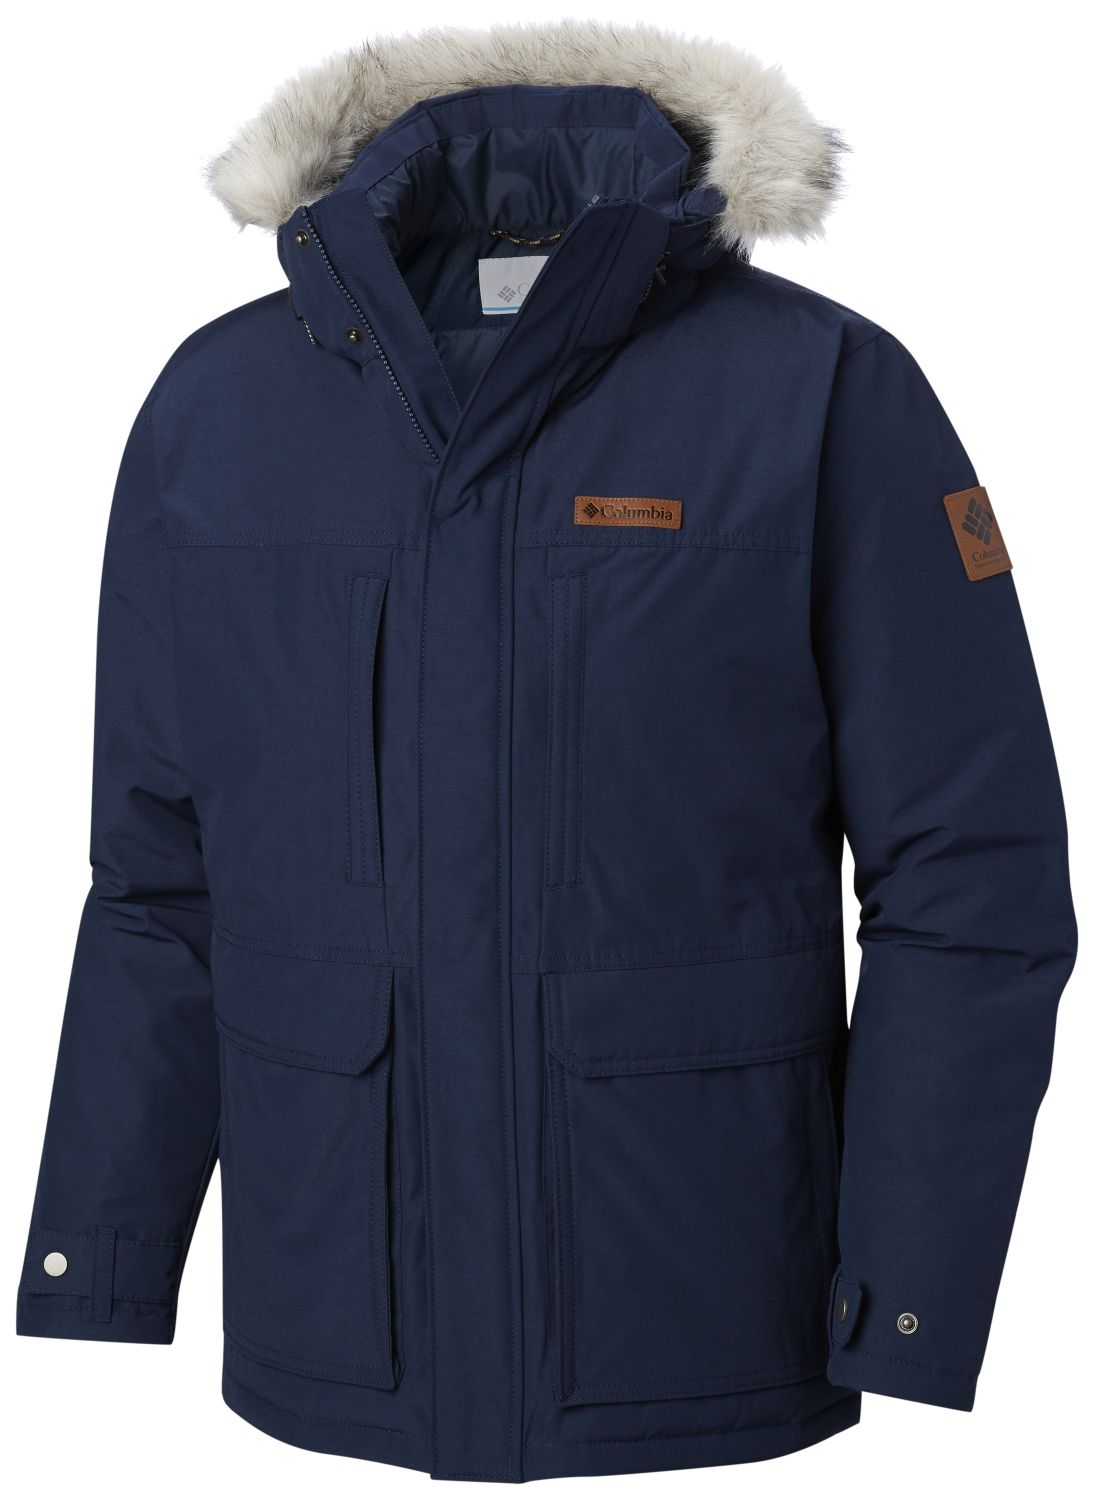 CHAQUETON MARQUAM PEAK 85% POLYESTER 15% COTTON WATER RESISTANT COLLEGIATE NAVY